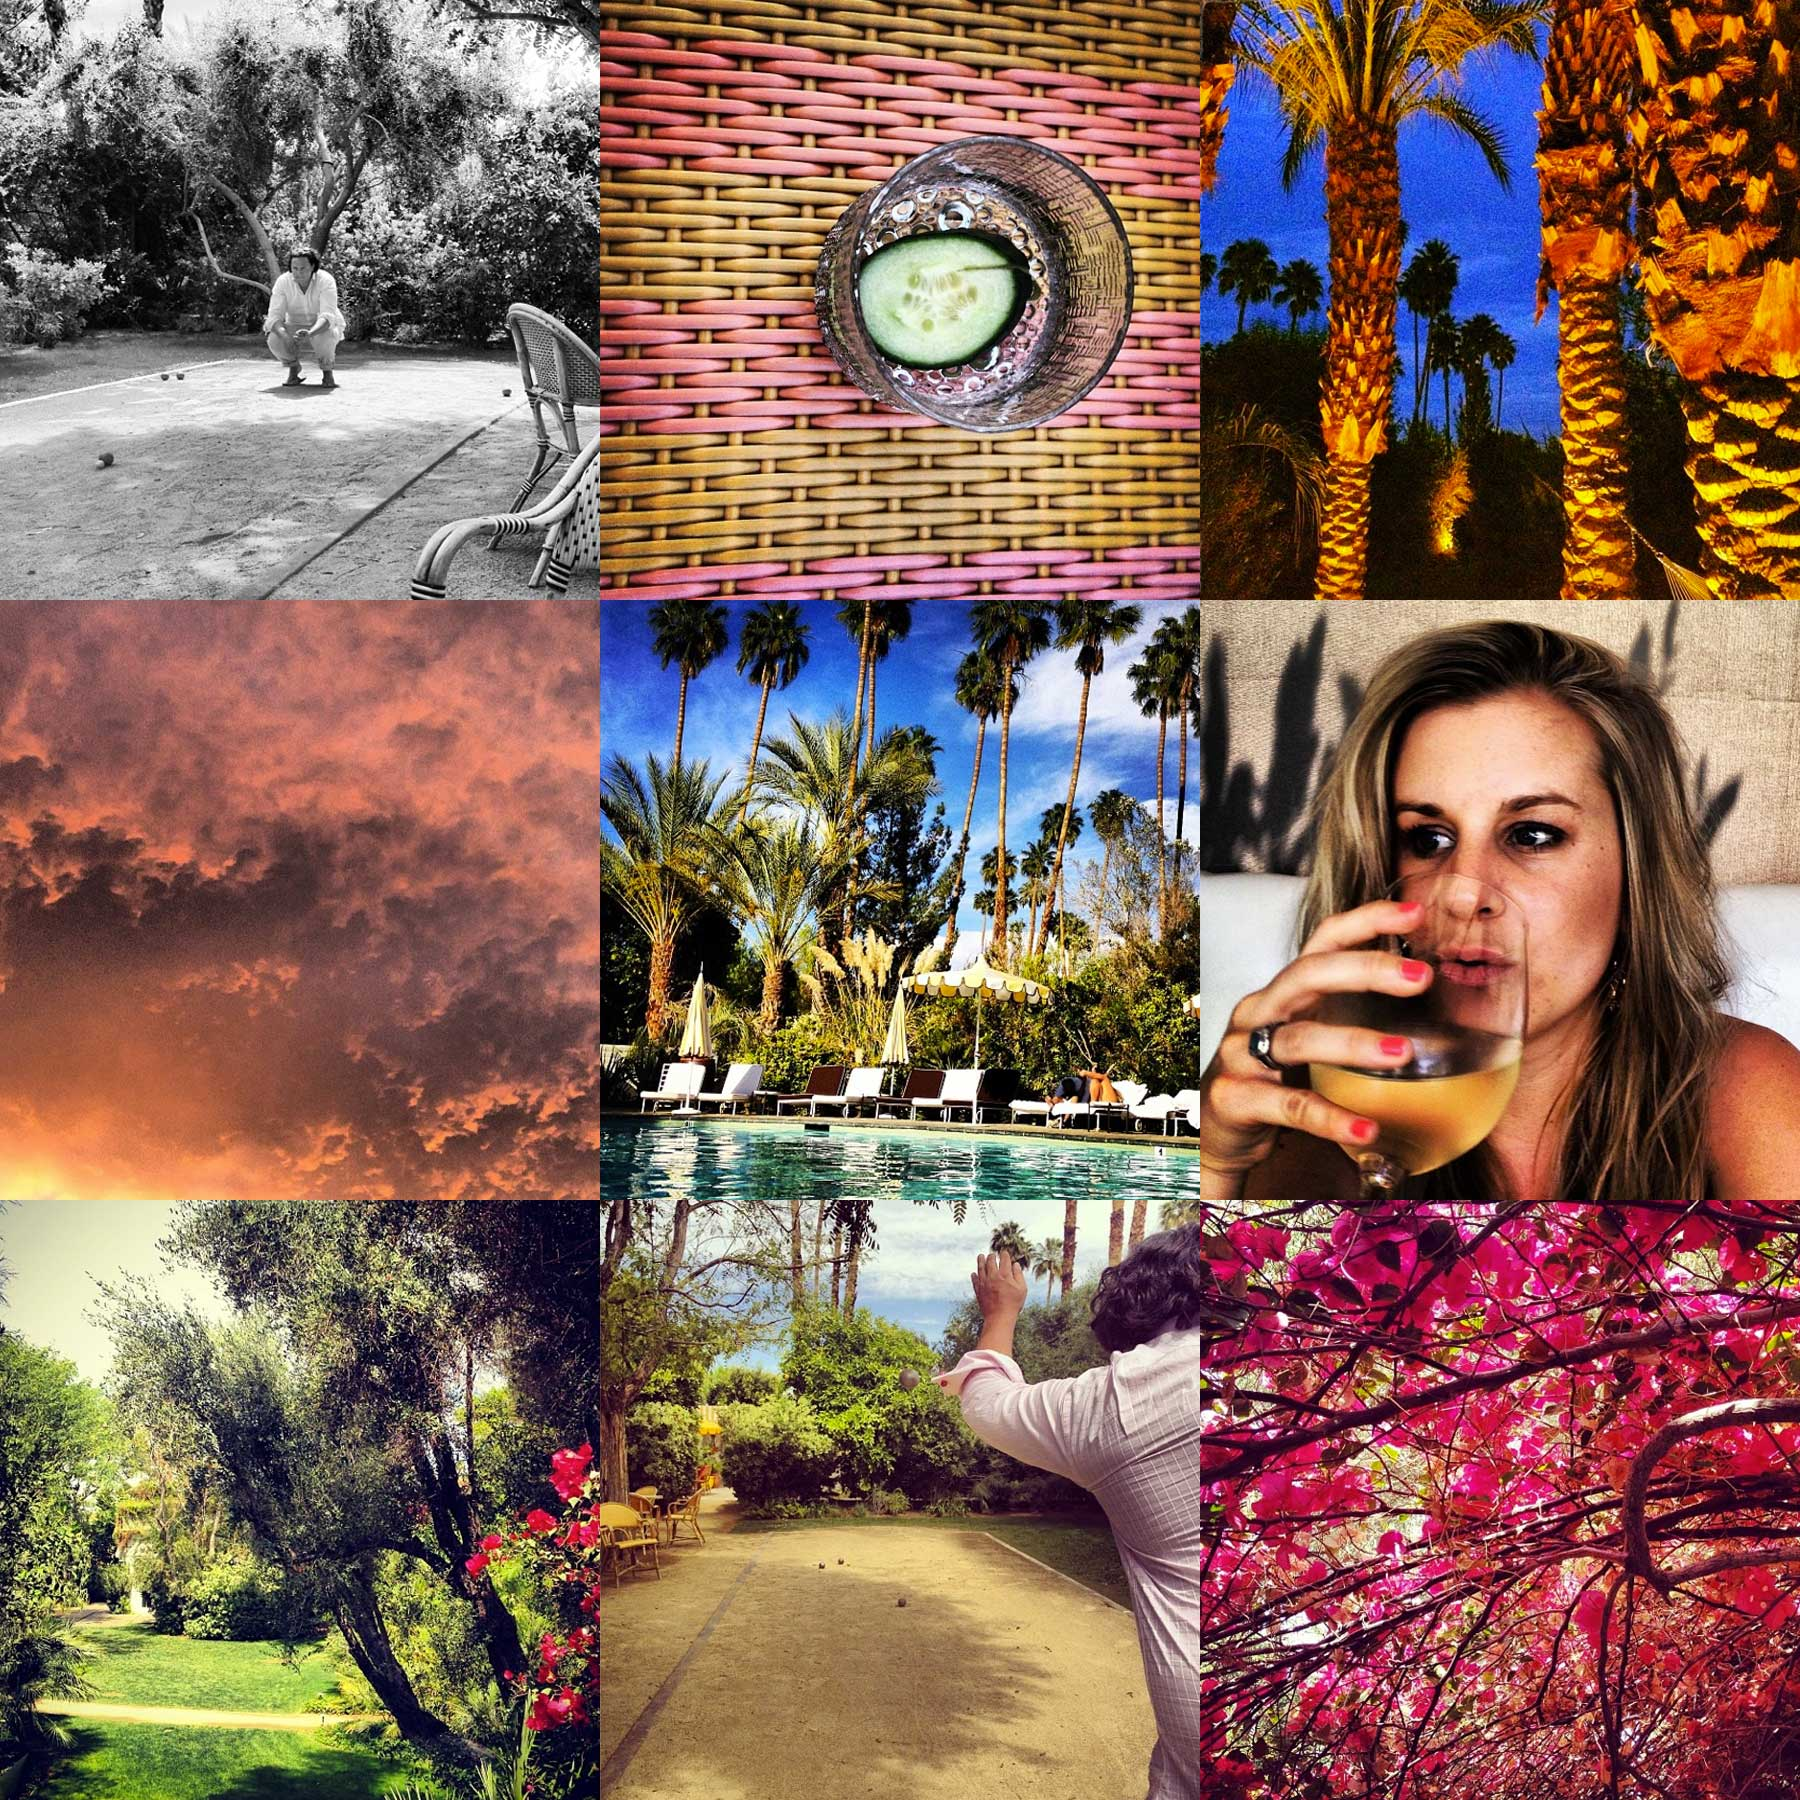 Leisure + Natural Beauty in Palm Springs, Liz Nehdi 2014